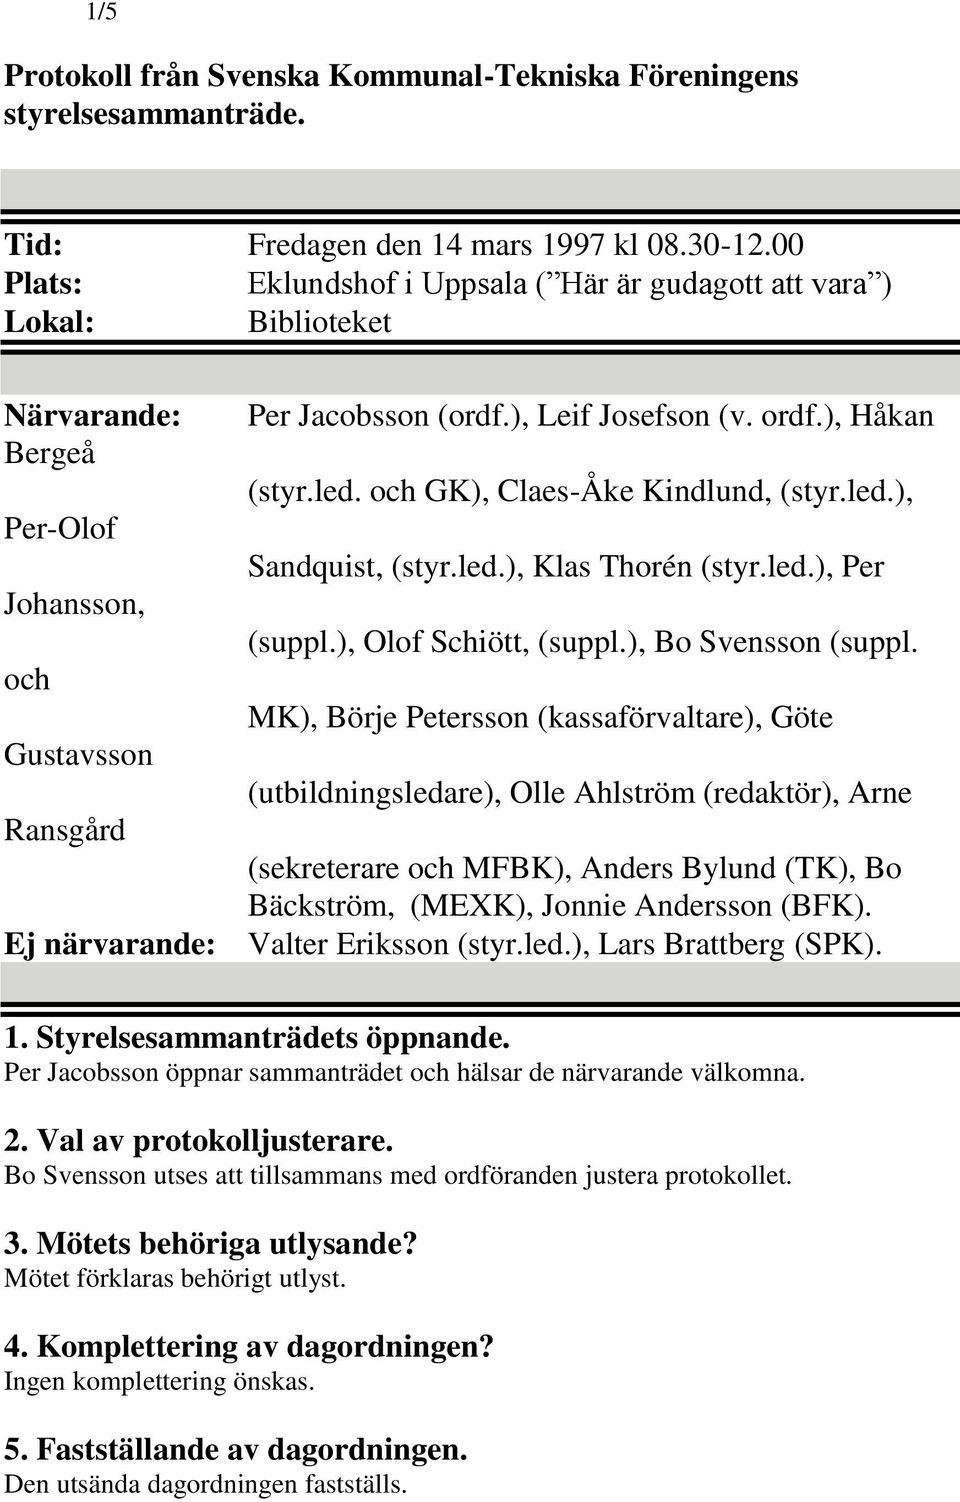 led.), Per-Olof Sandquist, (styr.led.), Klas Thorén (styr.led.), Per Johansson, (suppl.), Olof Schiött, (suppl.), Bo Svensson (suppl.